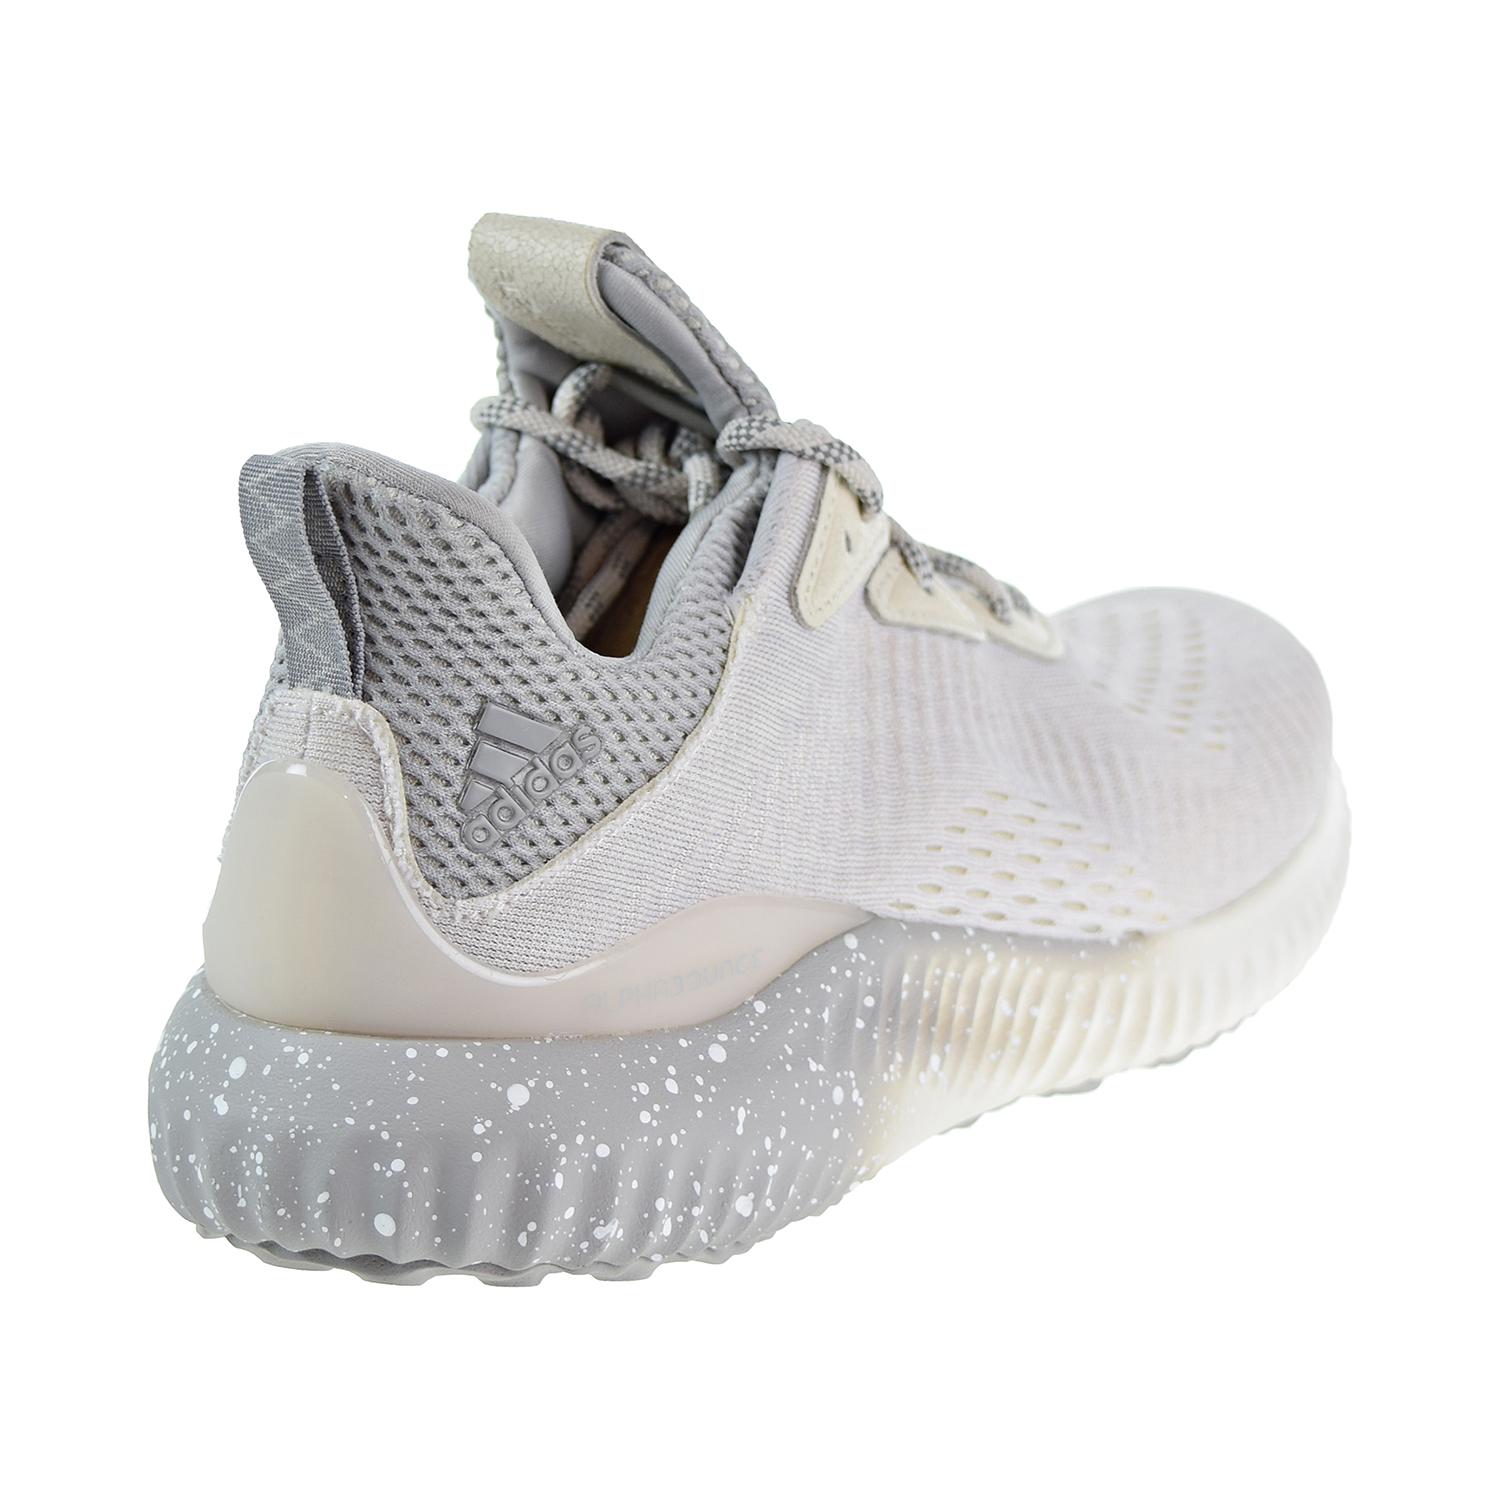 pretty nice 5c6ec ec8d9 Adidas Alphabounce 1 Reigning Champ Mens Shoes Core WhiteFootwear White  cg5328